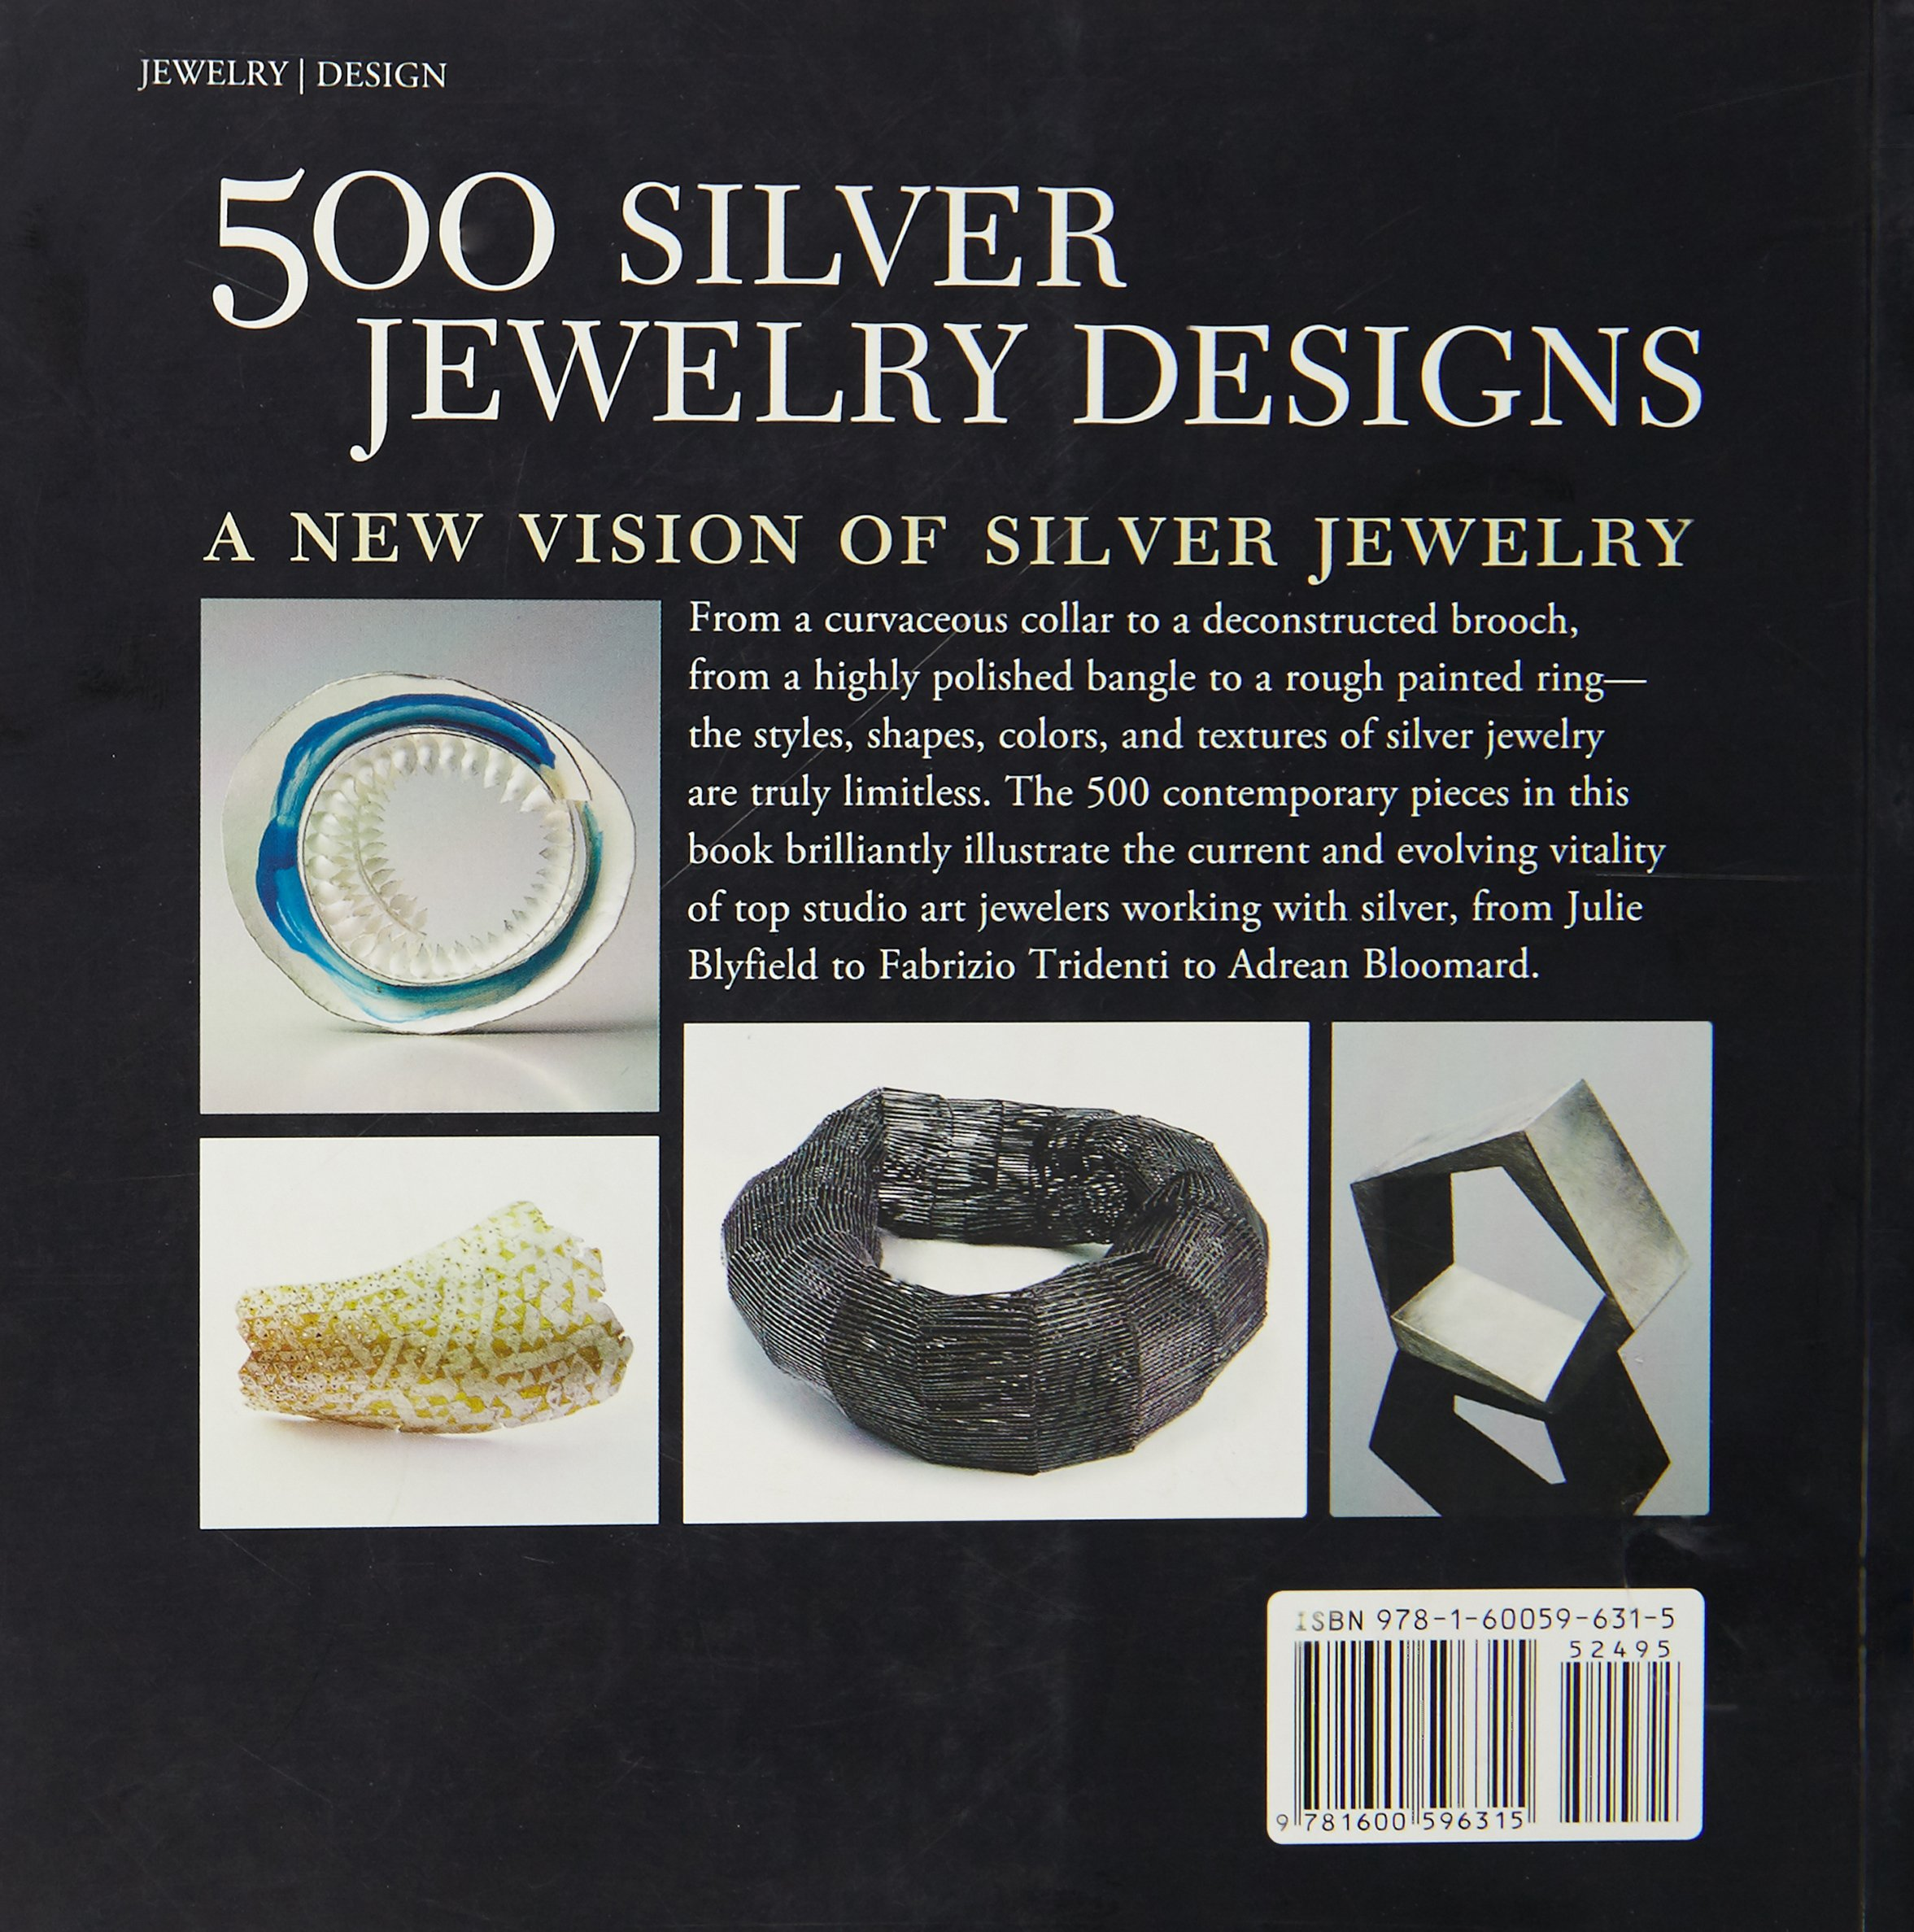 500 Silver Jewelry Designs: The Powerful Allure of a Precious Metal (500 Series) by Lark Books NC